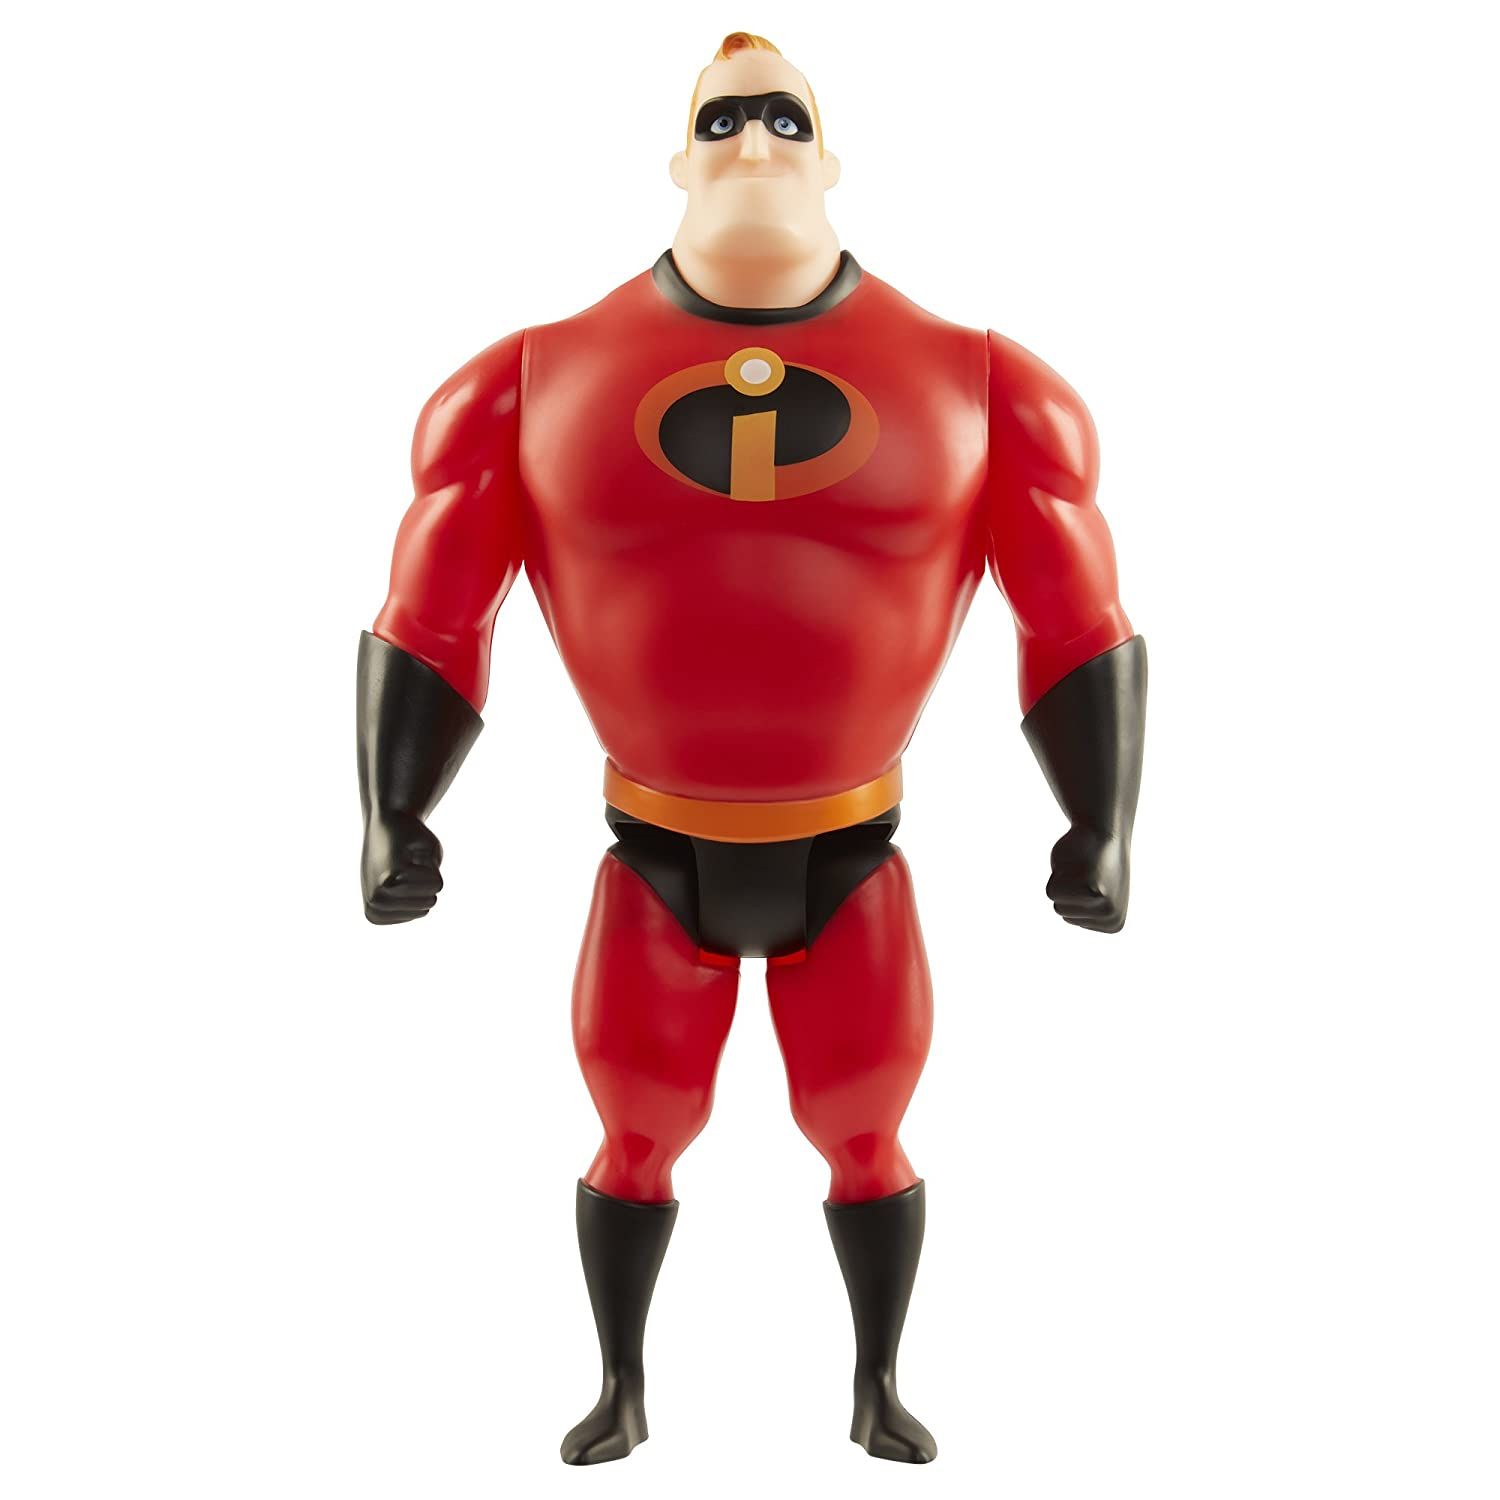 Jakks Pacific - Los Mr. Increíble Figuras,, Talla única (74952-7L) Jakks Pacific UK Ltd